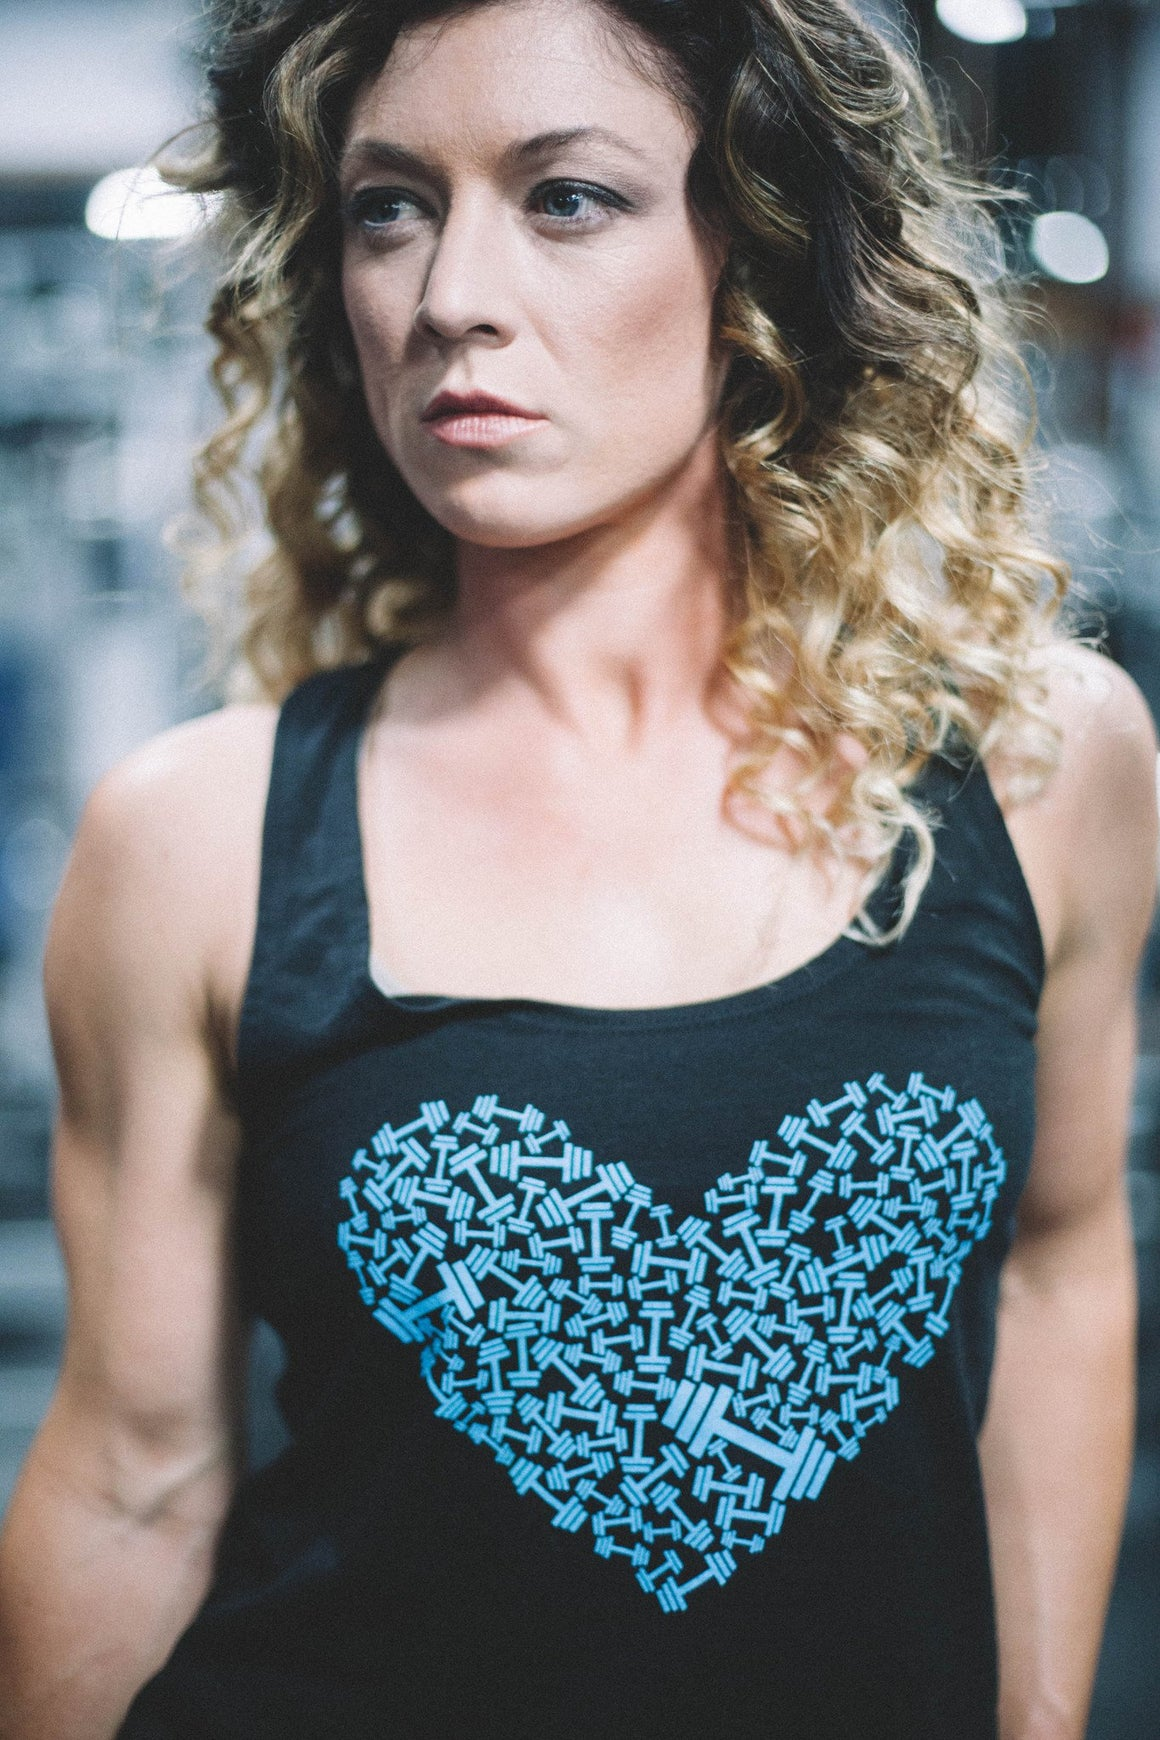 Dumbbell Heart Blue Tank top FitGirls Inspire